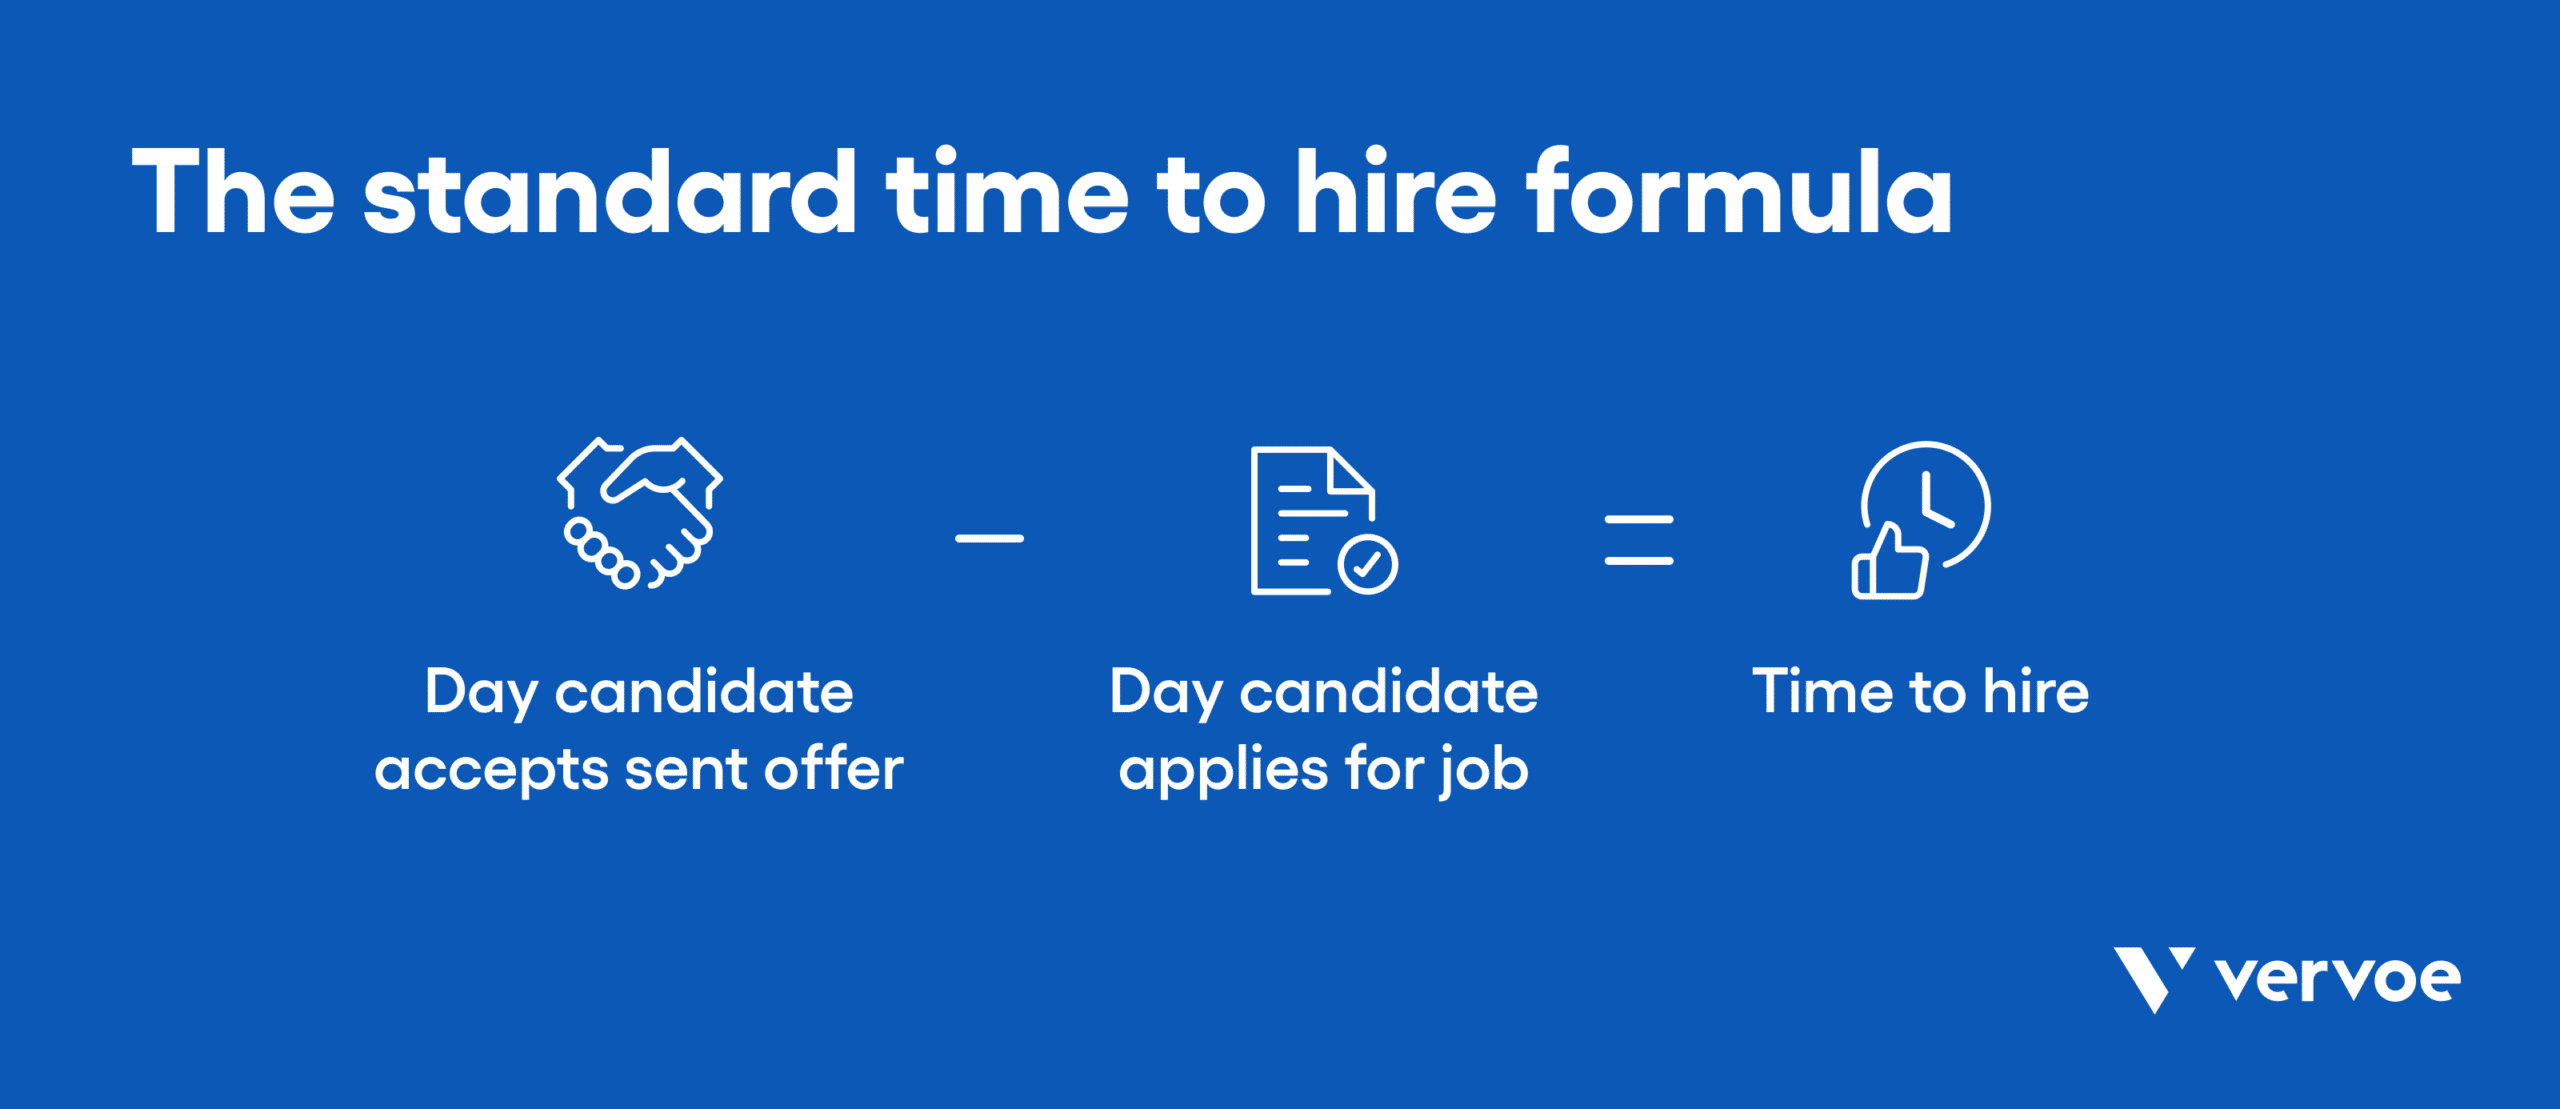 Infographic showing standard time to hire formula